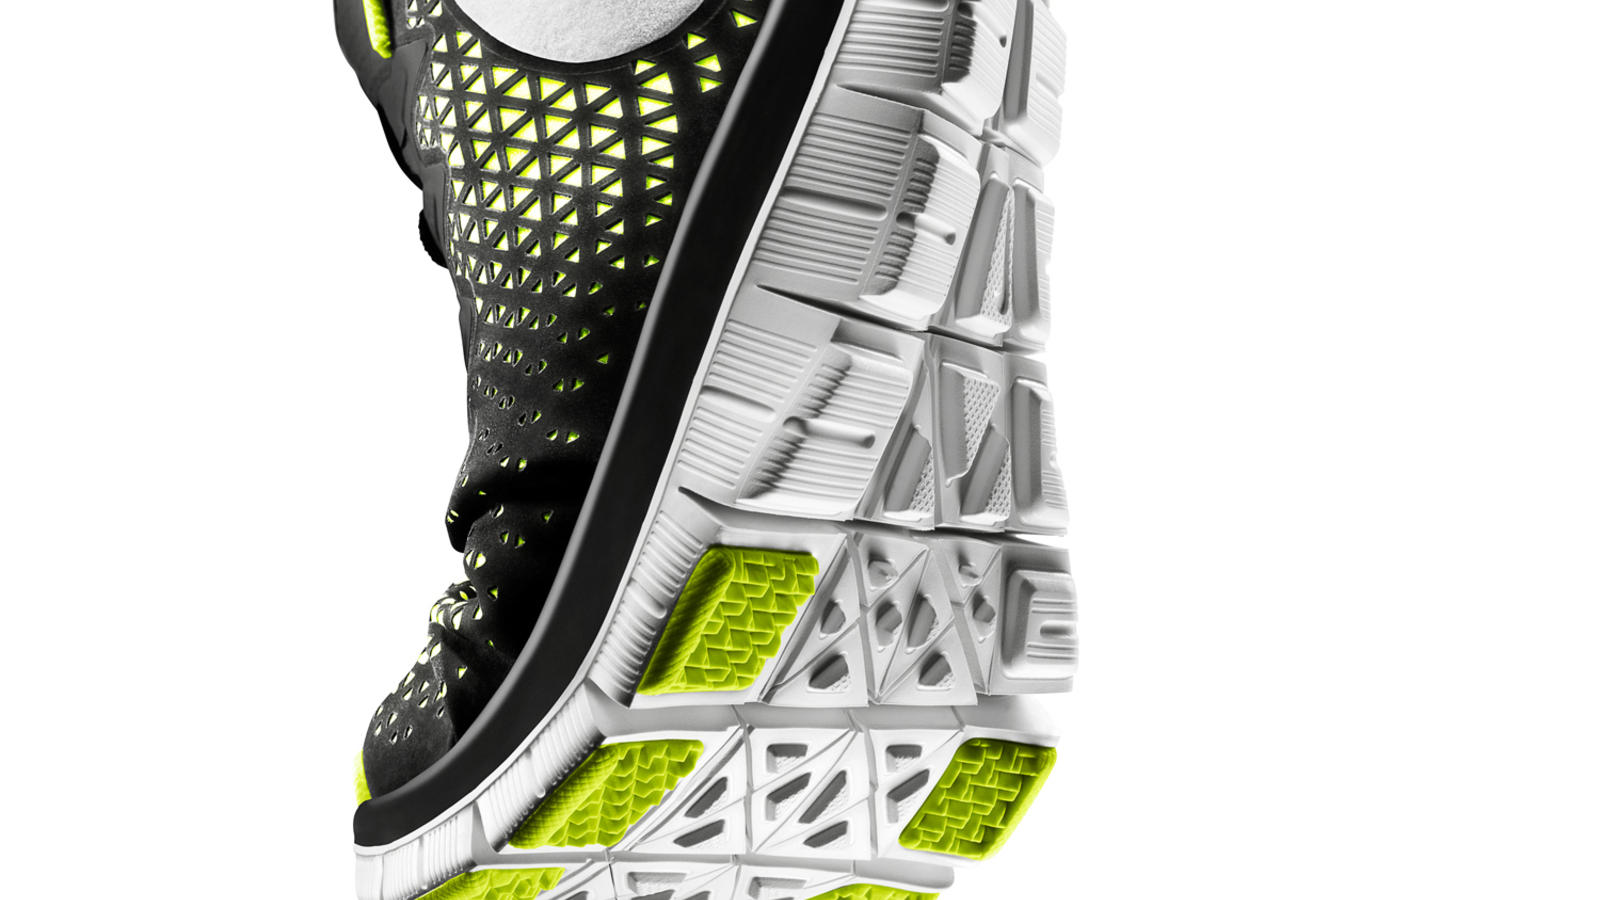 cdd036b2f0f2d Introducing the Nike Free Haven 3.0 - Nike News